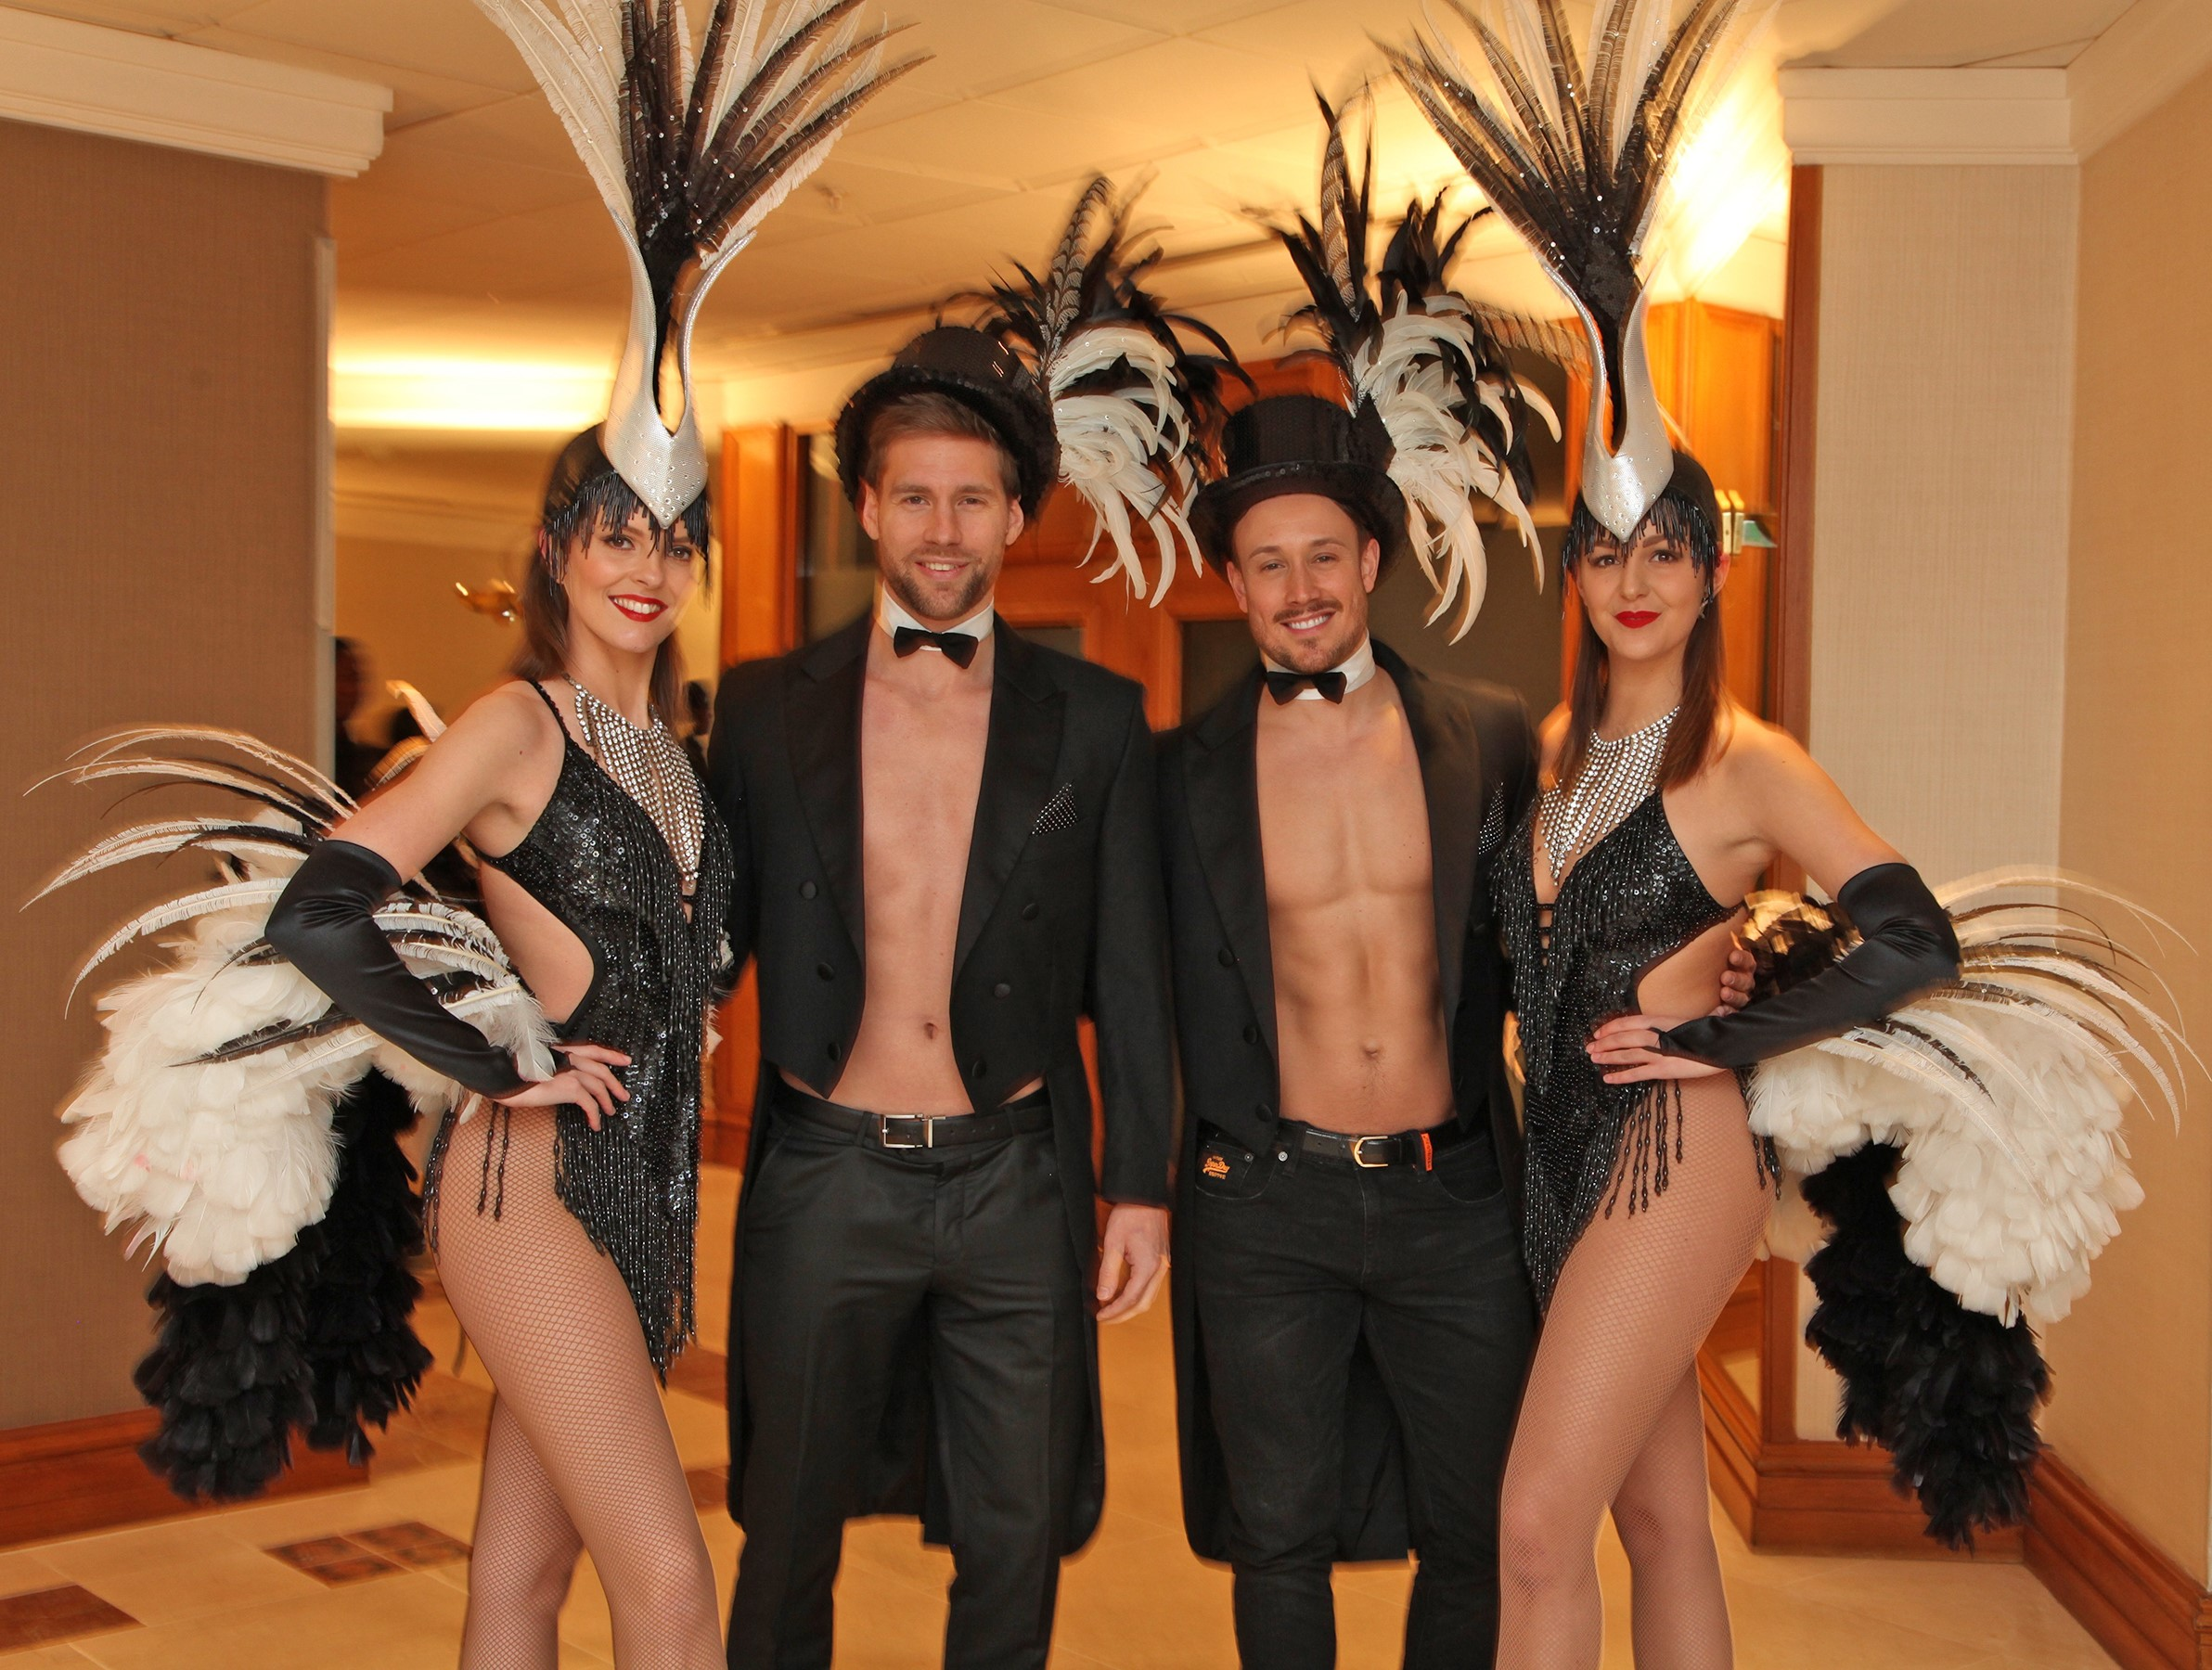 Vegas Show Boys Event Dancers Dancers For Hire Uk